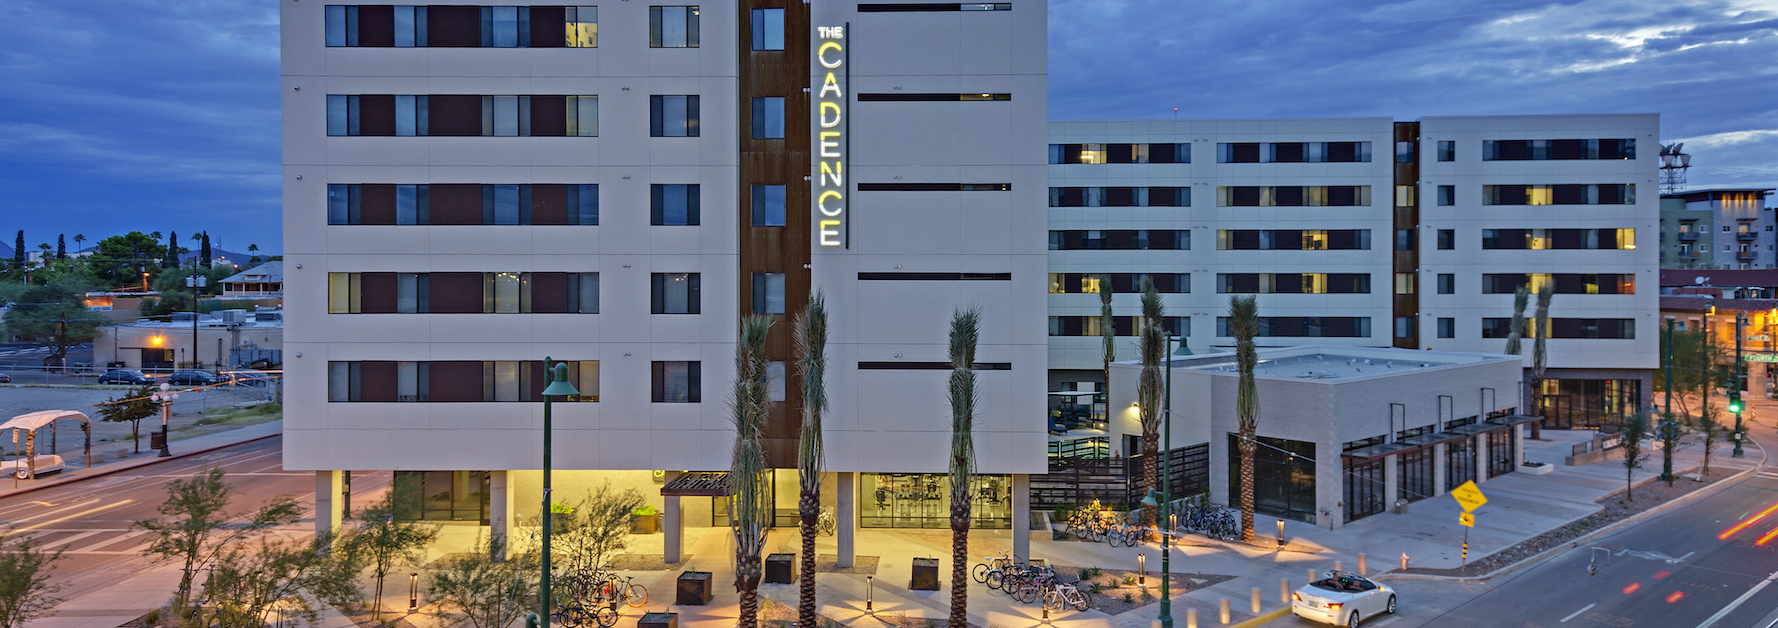 The Cadence | Apartments in 350 EAST CONGRESS STREET, - TUCSON AZ - Reviews - Photos - Phone Number